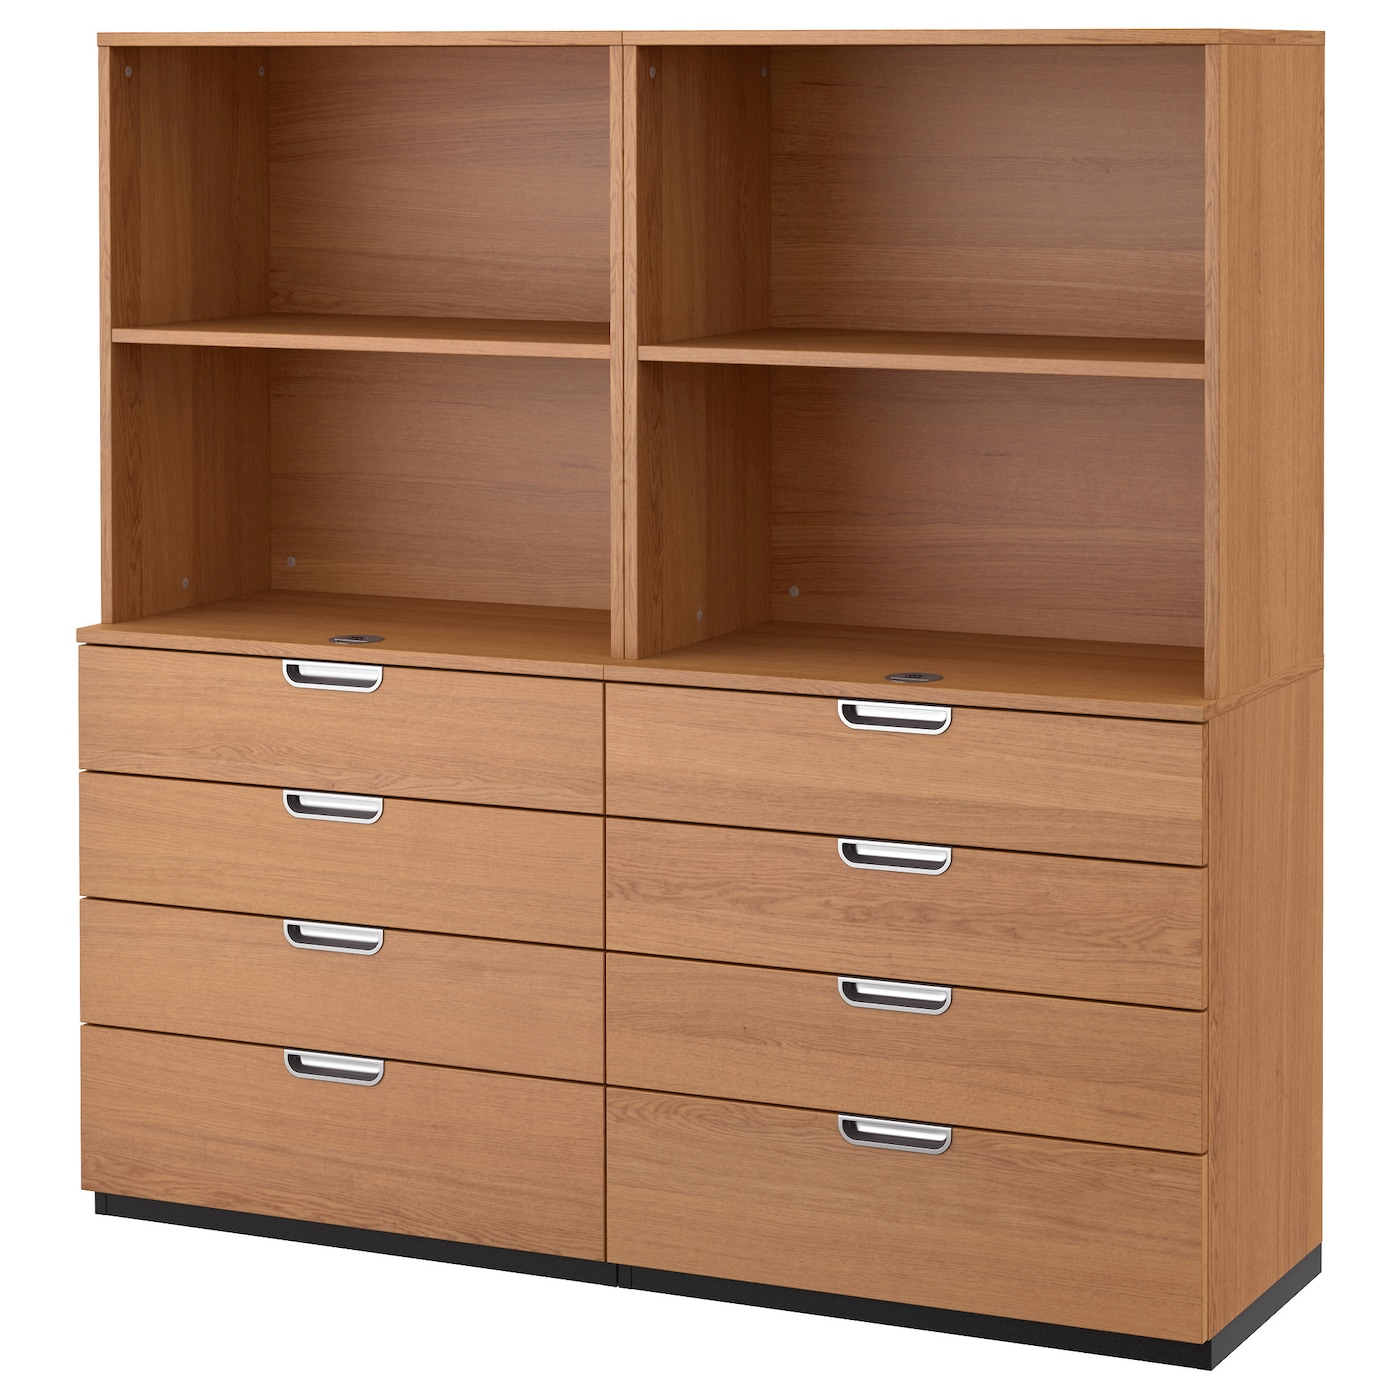 Galant storage combination with drawers oak veneer